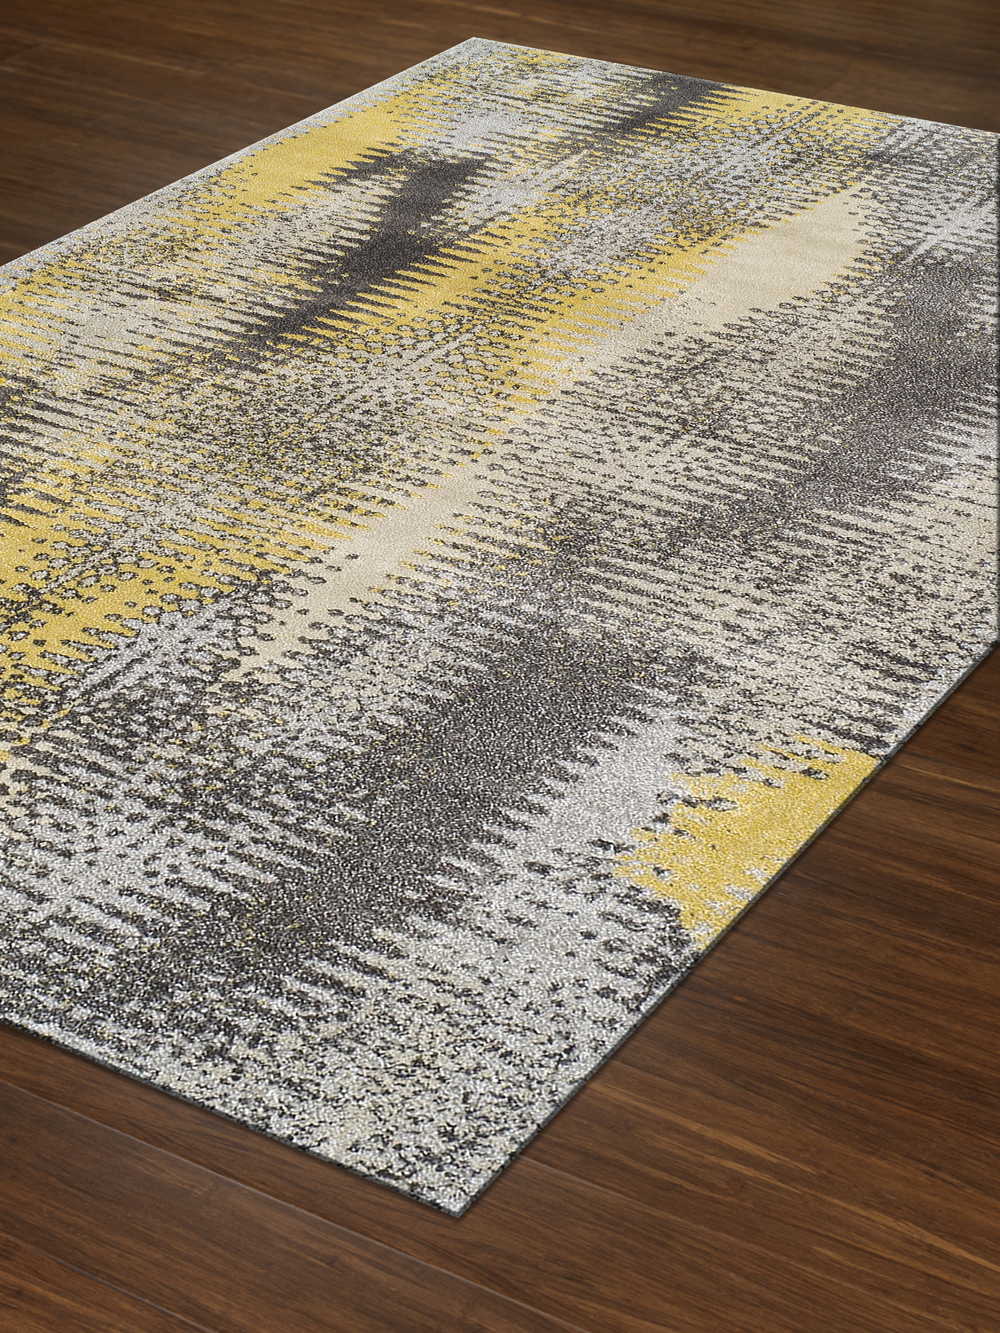 Perfect Modern Grey Graphite, Premium Polypropylene Rug